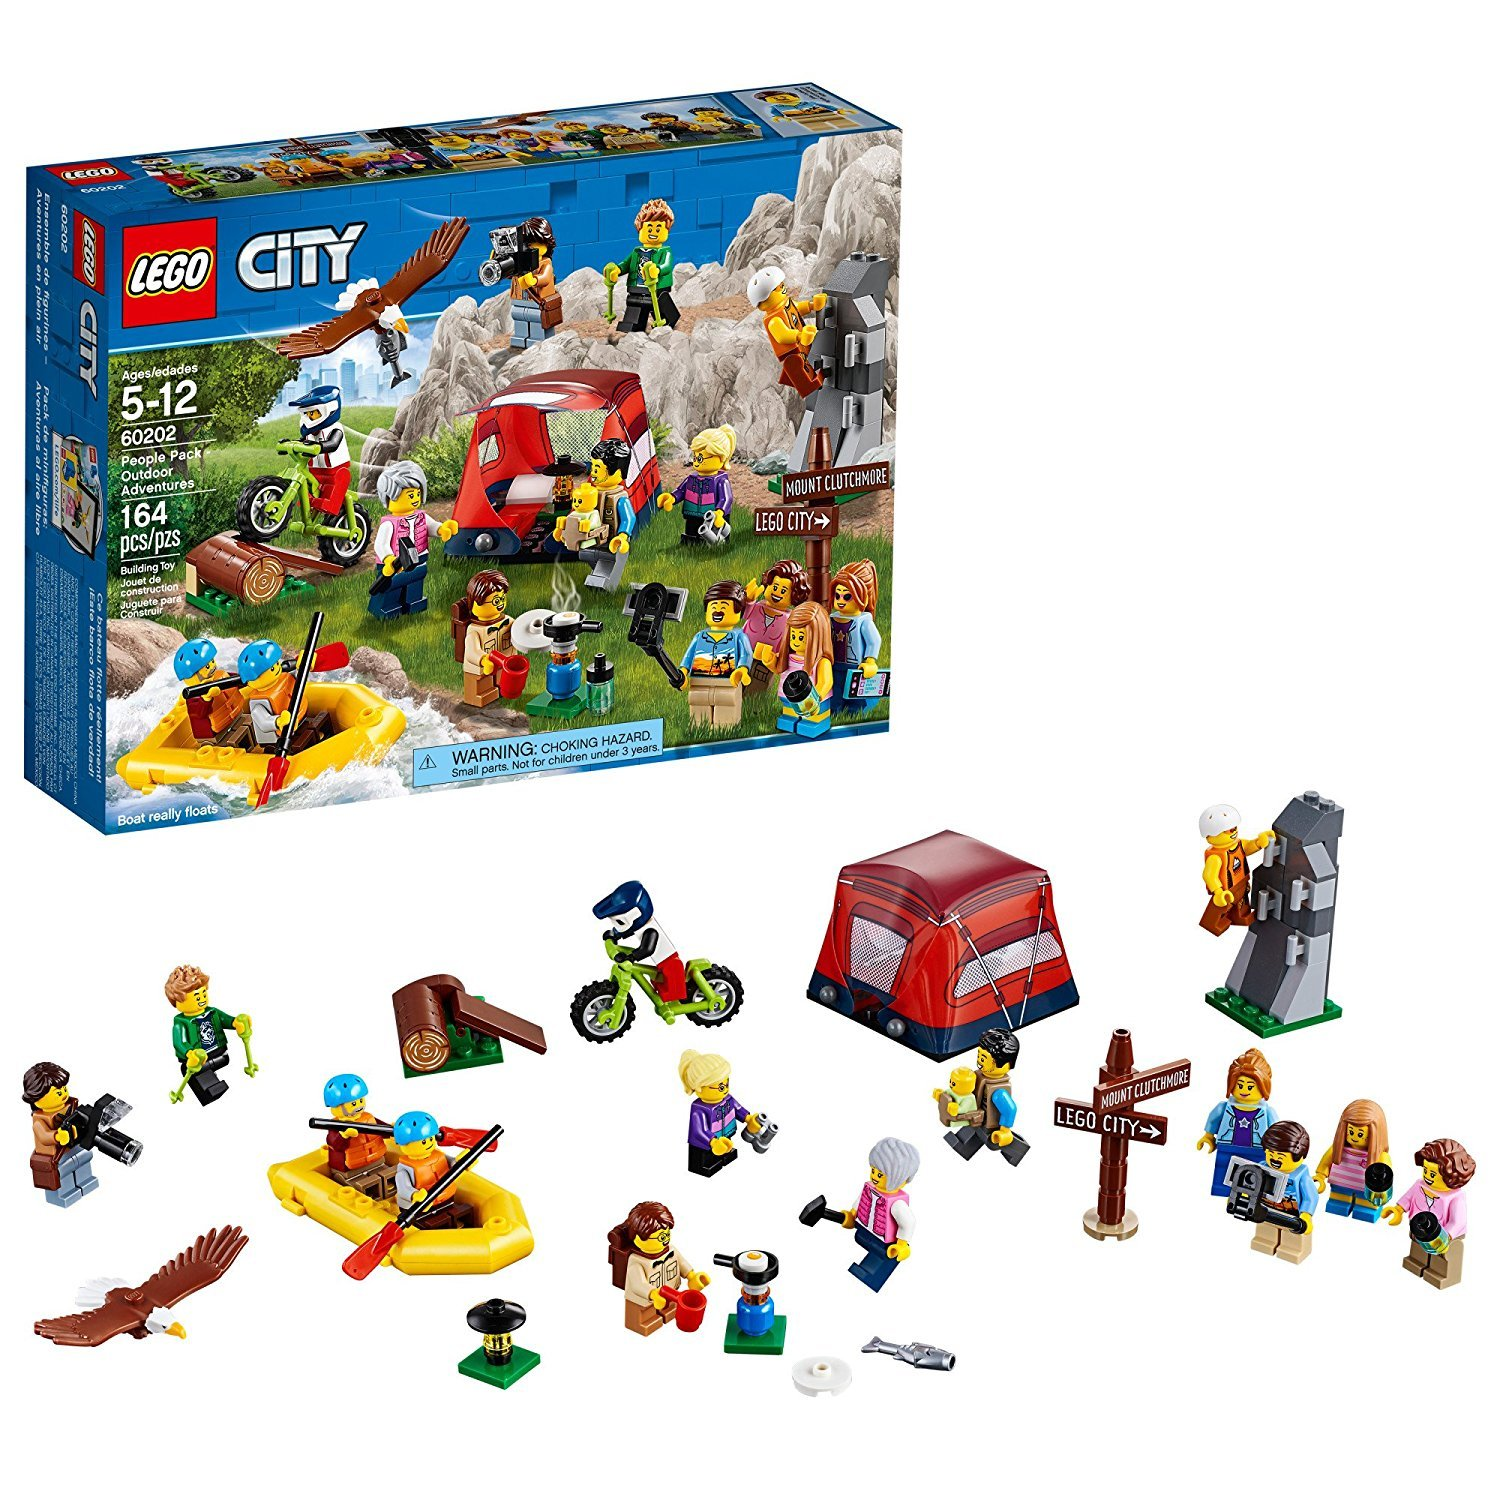 Lego City (60202) People Pack Outdoor Adventure 164 pcs